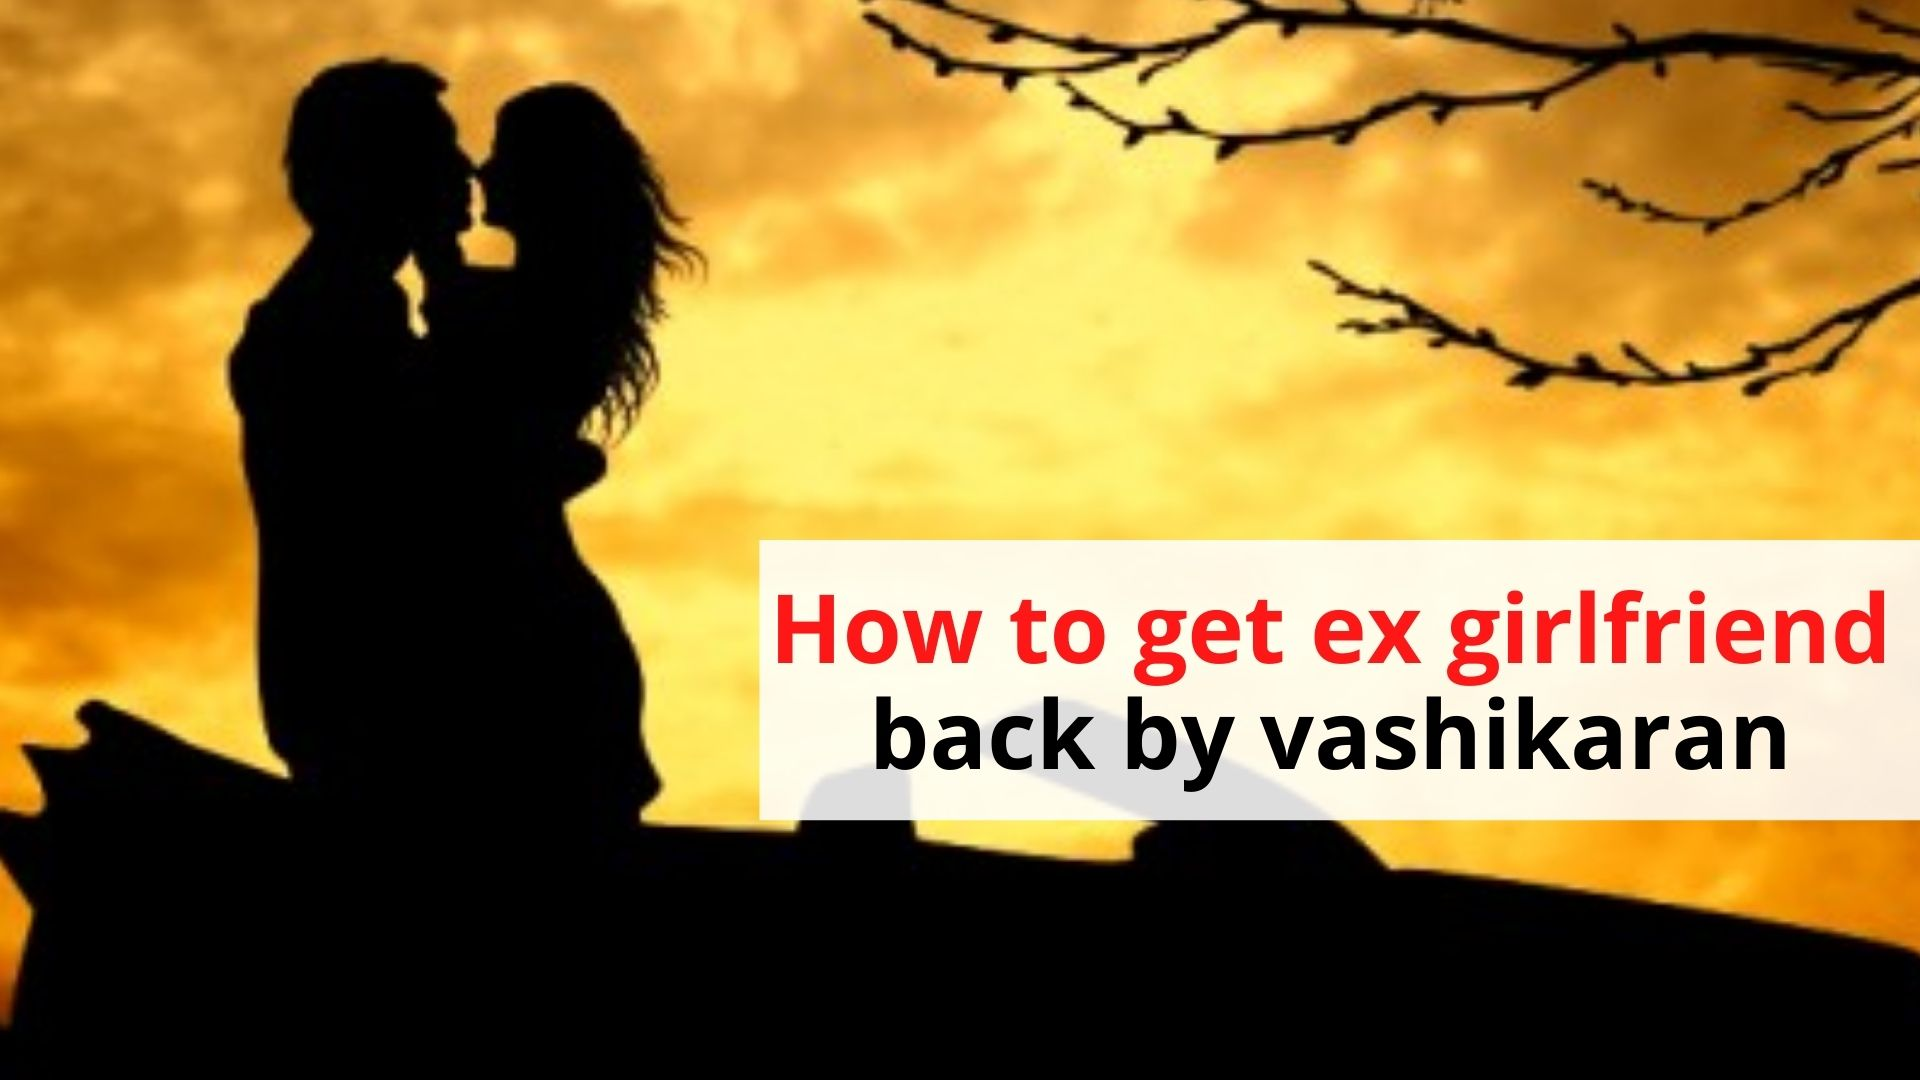 How to get ex girlfriend back by vashikaran